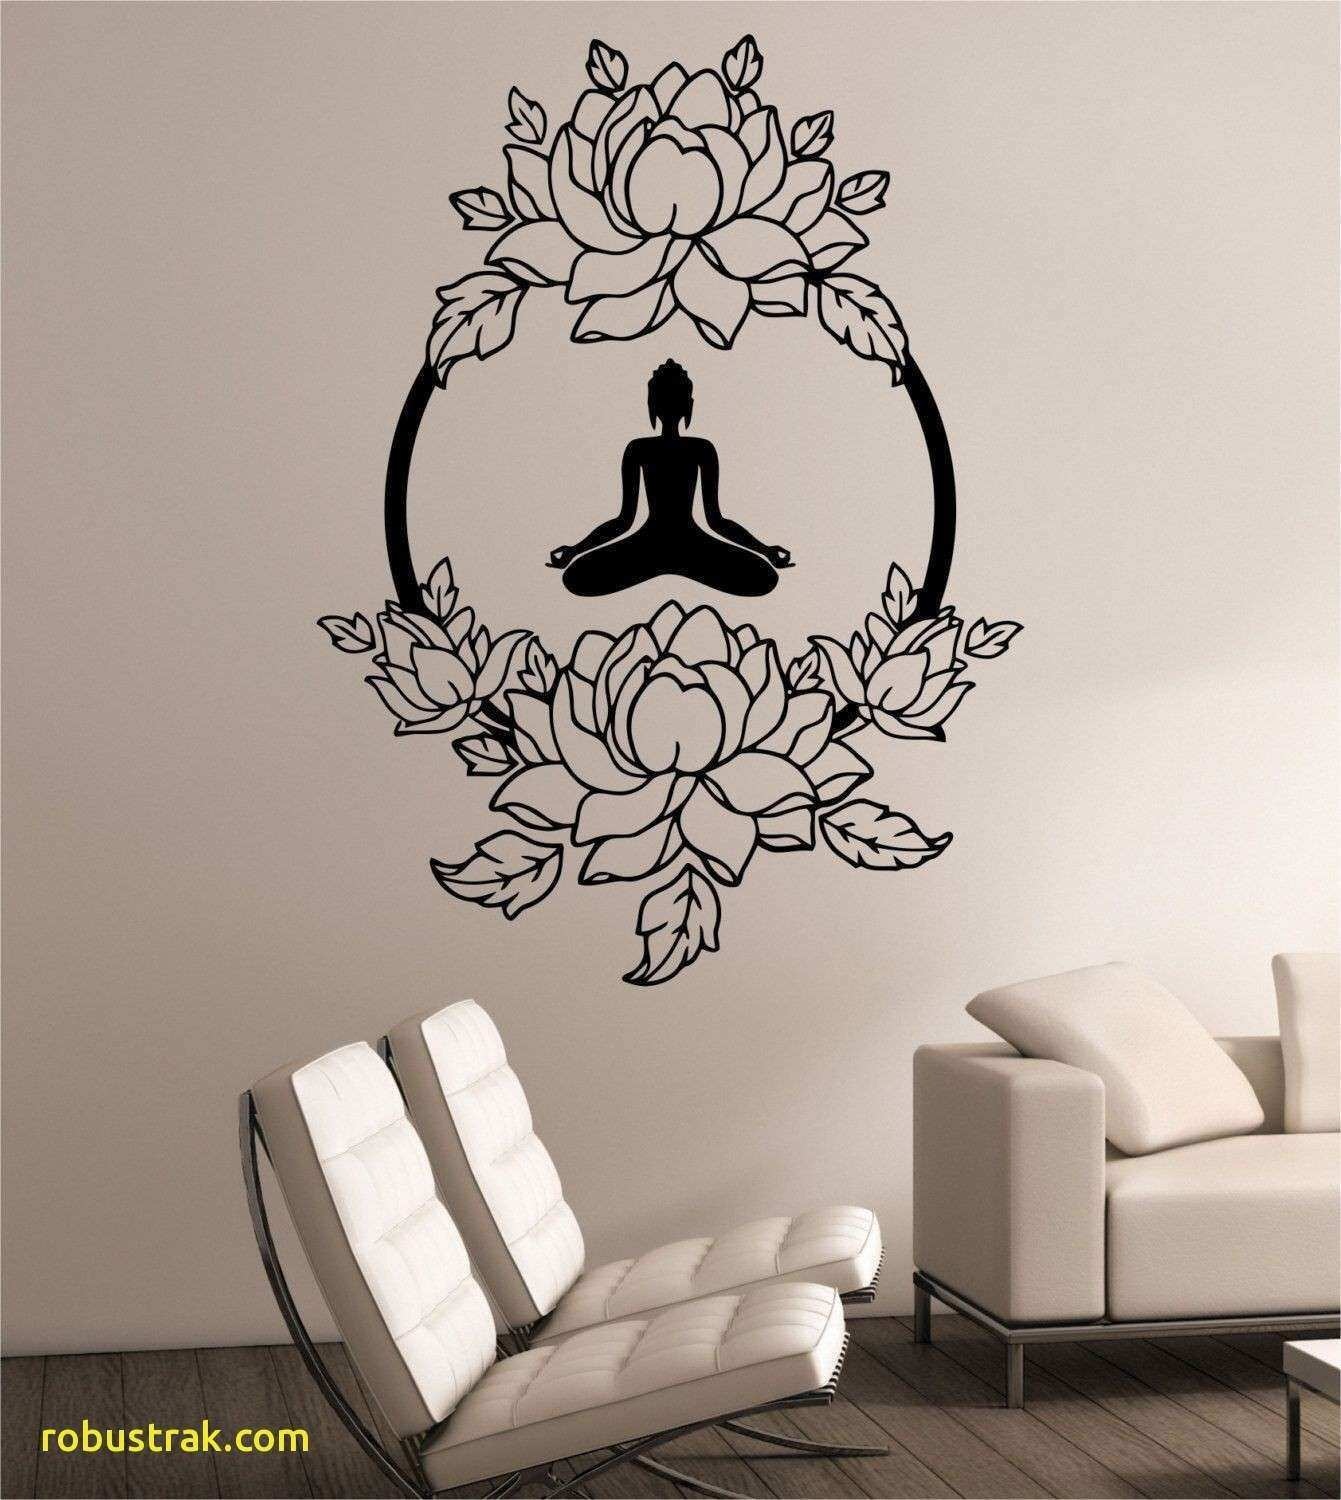 Awesome Mountain Wall Decal